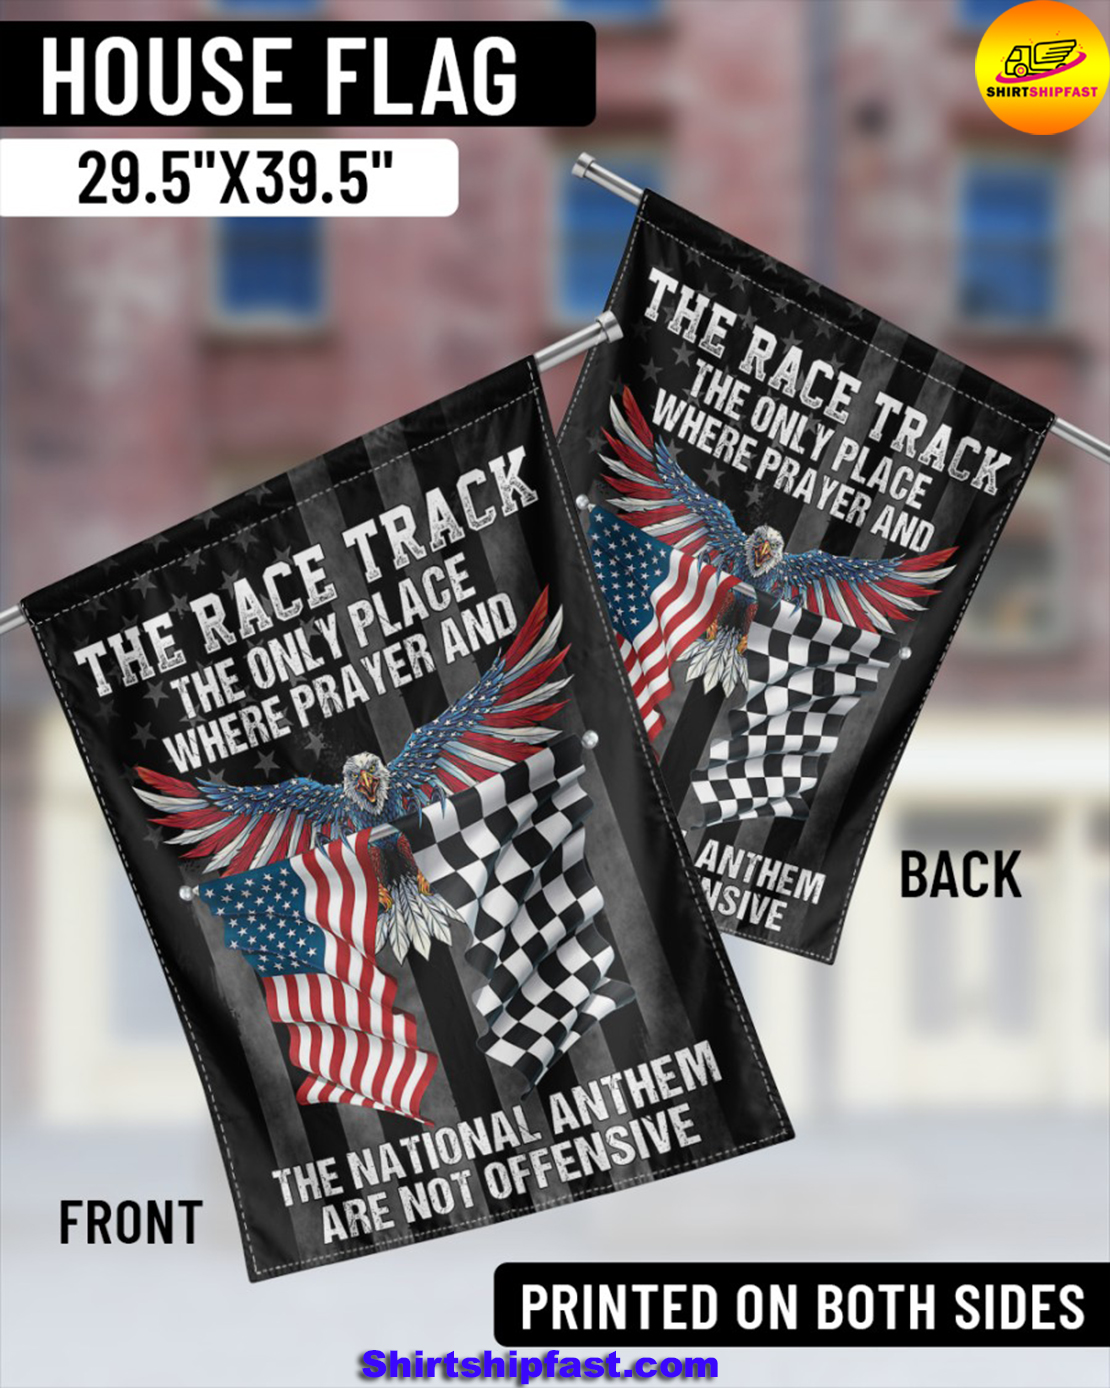 Eagle The race track the only place where prayer and the national anthem are not offensive flag - Picture 2